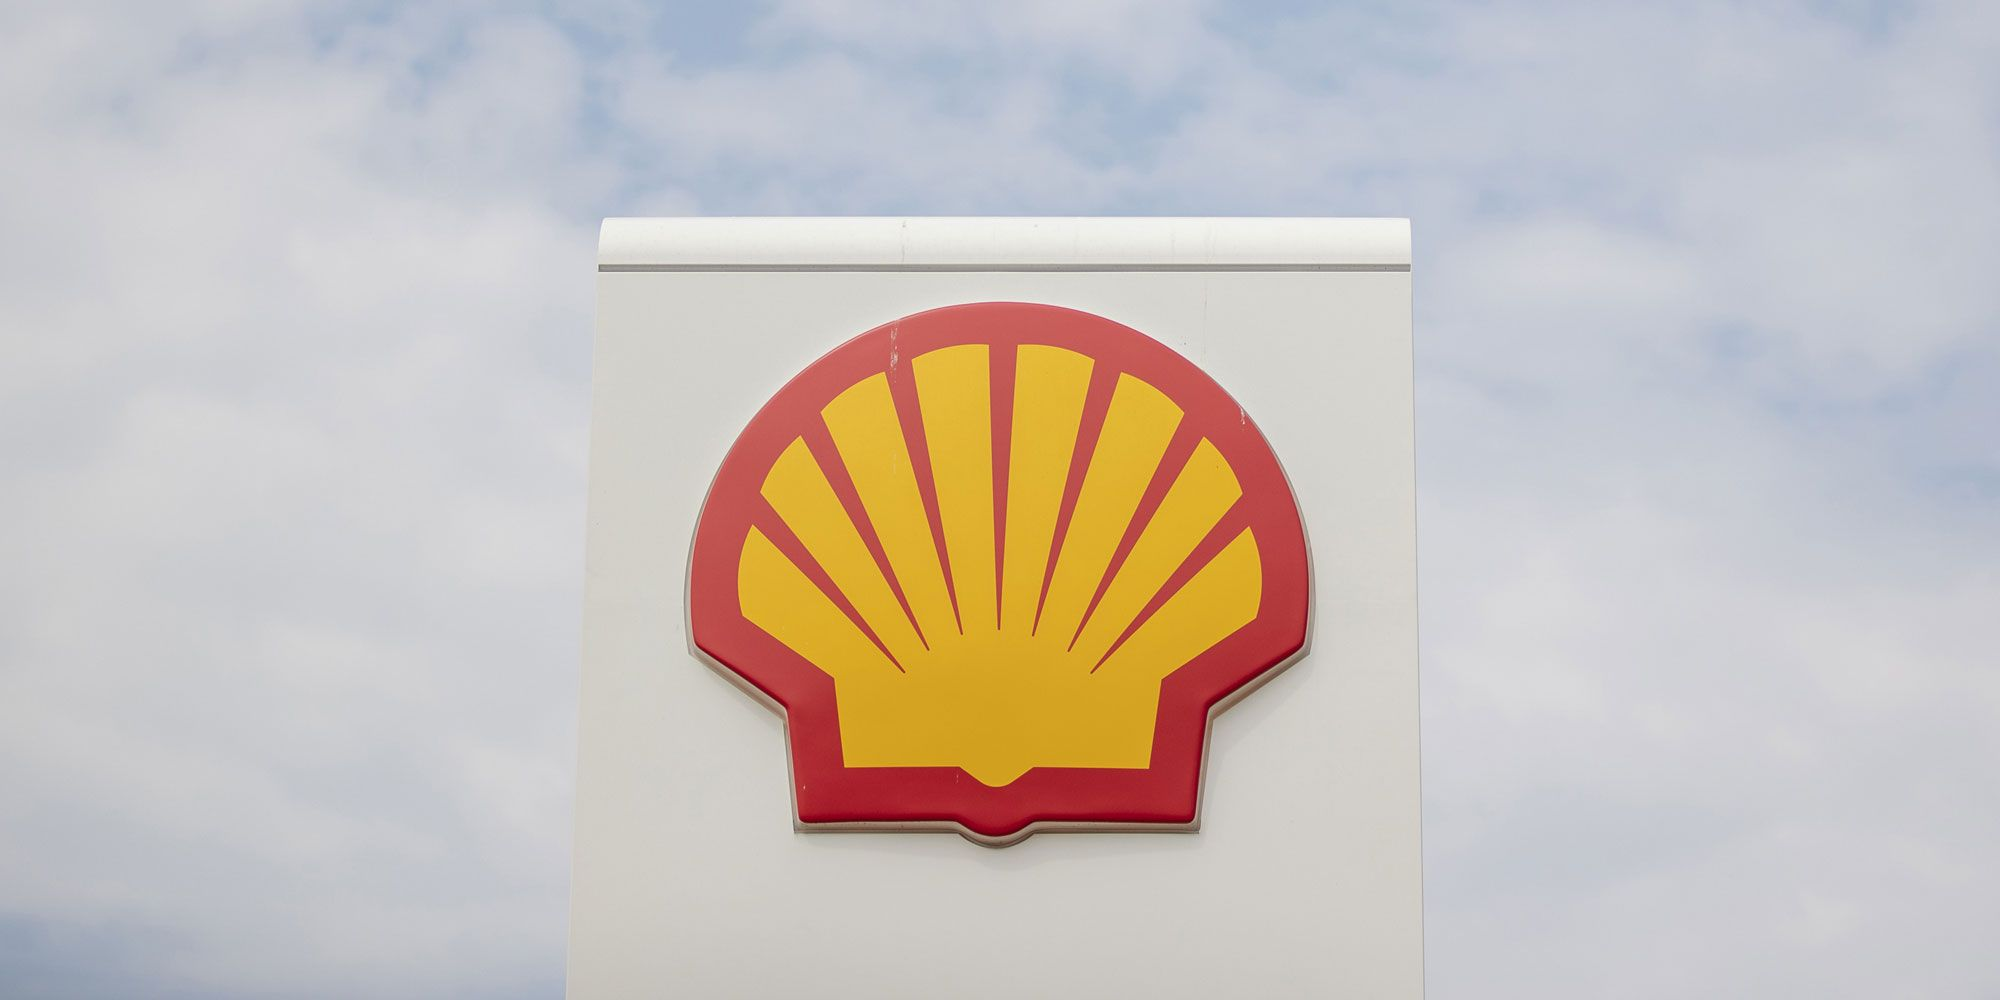 A Shell logo sits on a sign at a gas station, operated by Royal Dutch Shell Plc., in Rotterdam, Netherlands, on Wednesday, July 25, 2018. Photographer: Jasper Juinen/Bloomberg